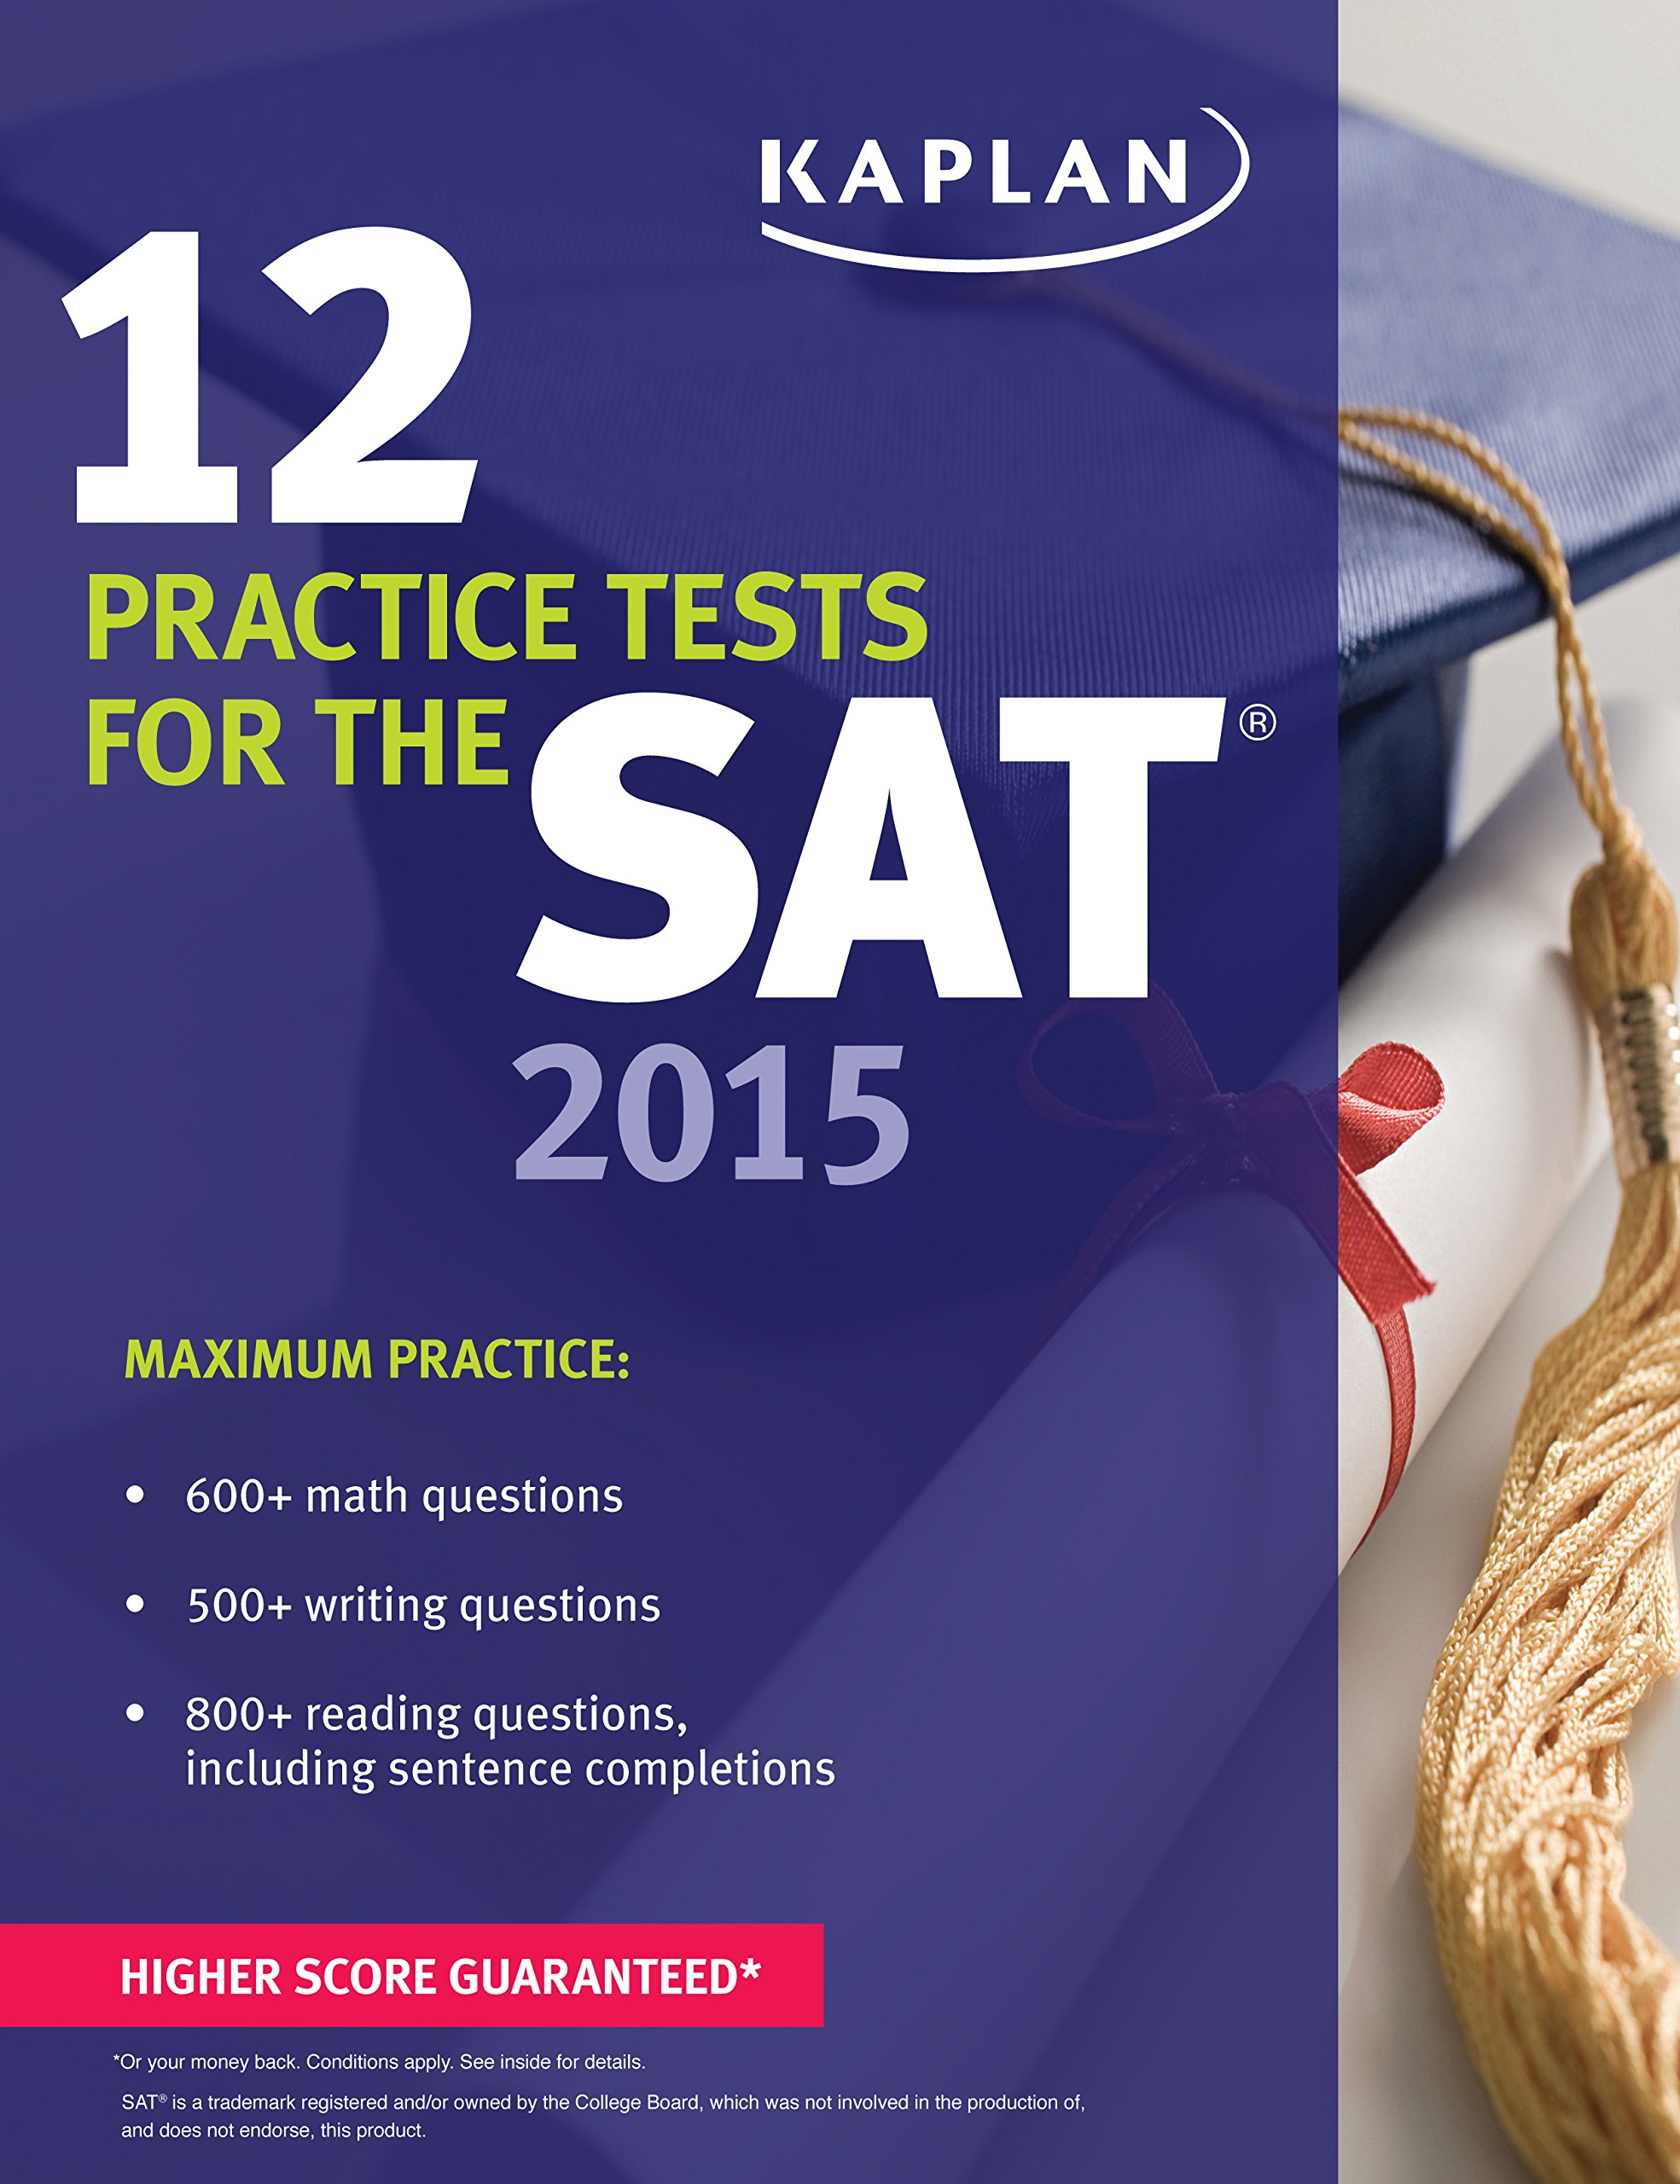 buy kaplan practice tests for the sat kaplan test prep buy kaplan 12 practice tests for the sat 2015 kaplan test prep book online at low prices in kaplan 12 practice tests for the sat 2015 kaplan test